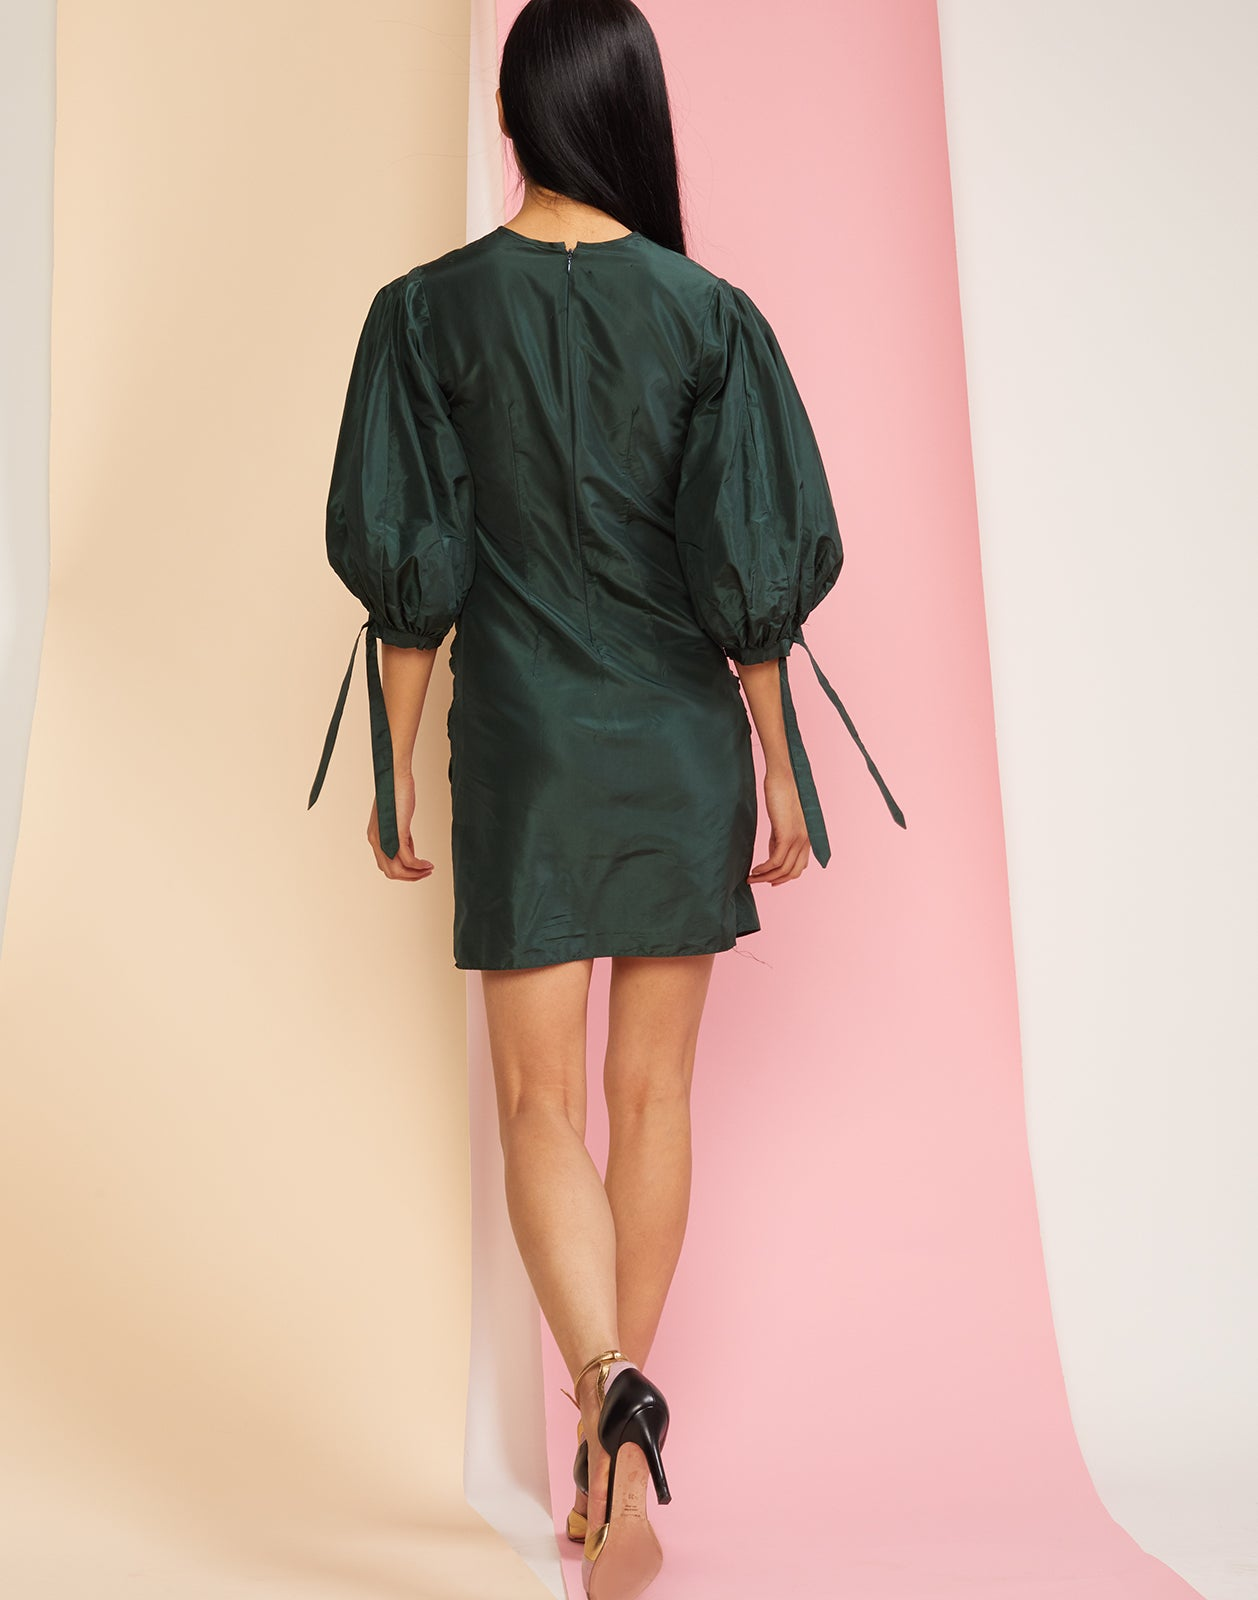 Back view of the Andi mini dress with puff sleeves in emerald silk taffeta.